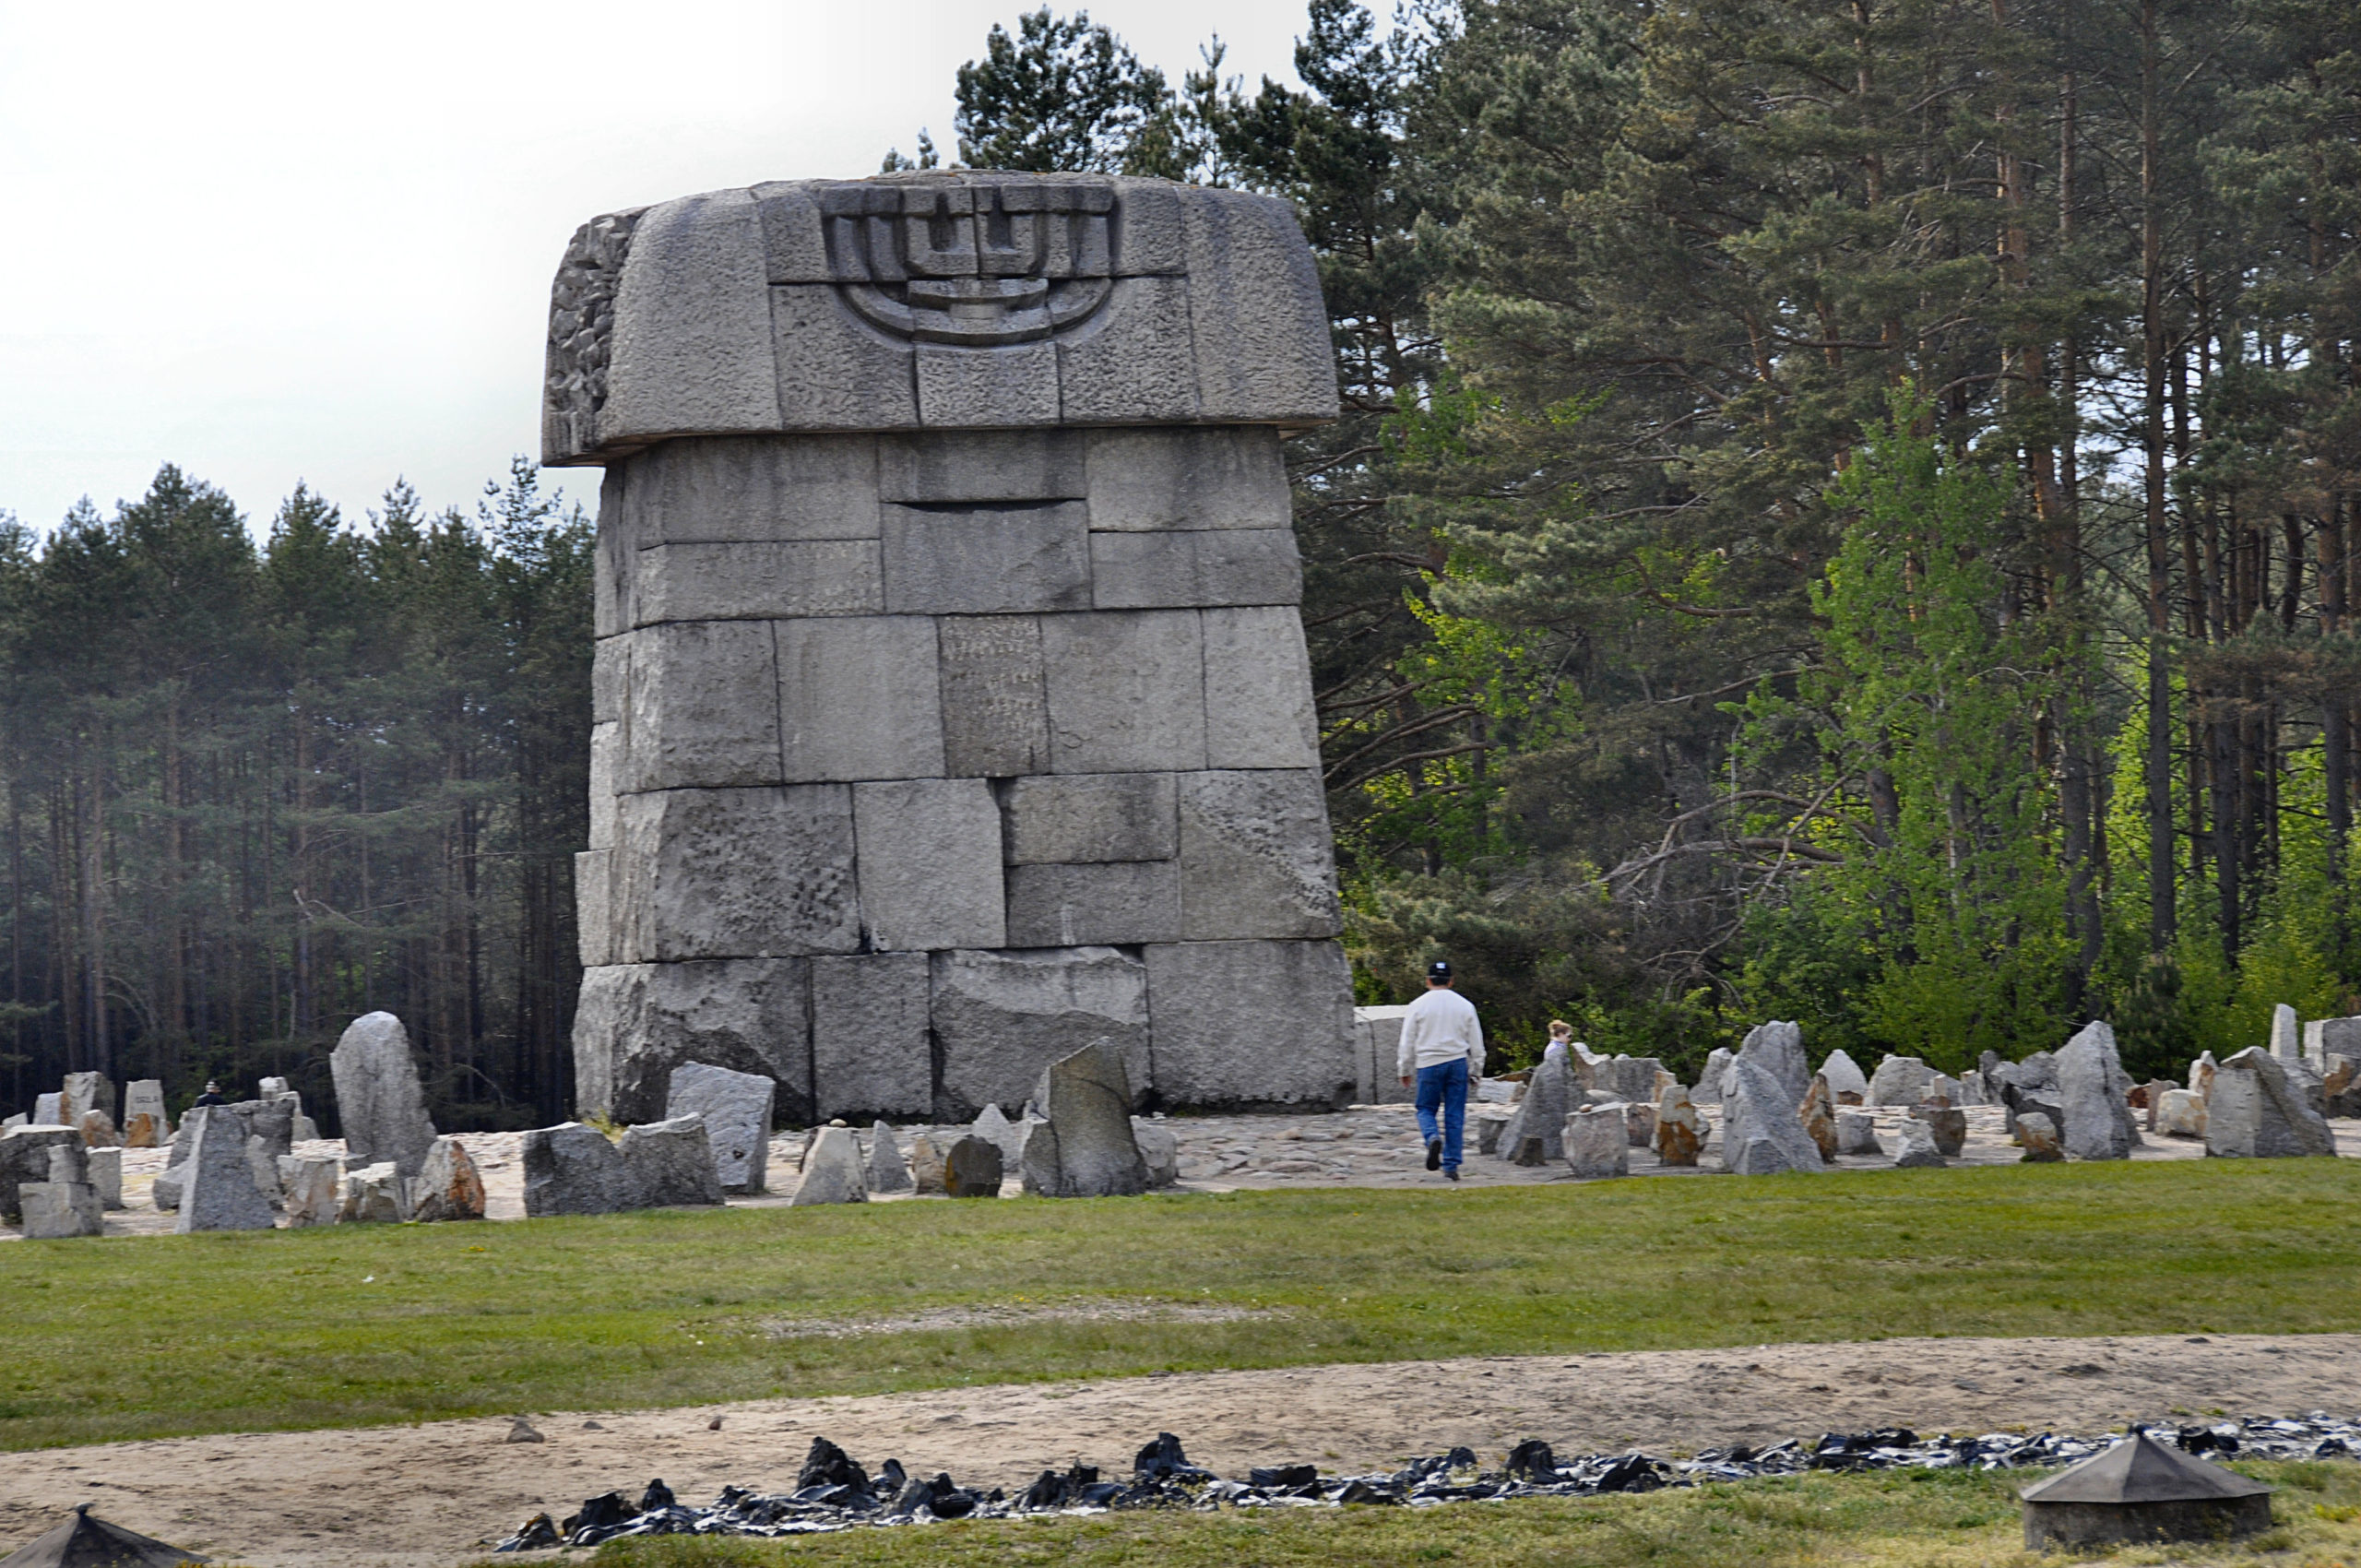 Holocaust Memorial at the Treblinka extermination camp, constructed on the site of the gas chambers. Photo courtesy of Michael Leibson.